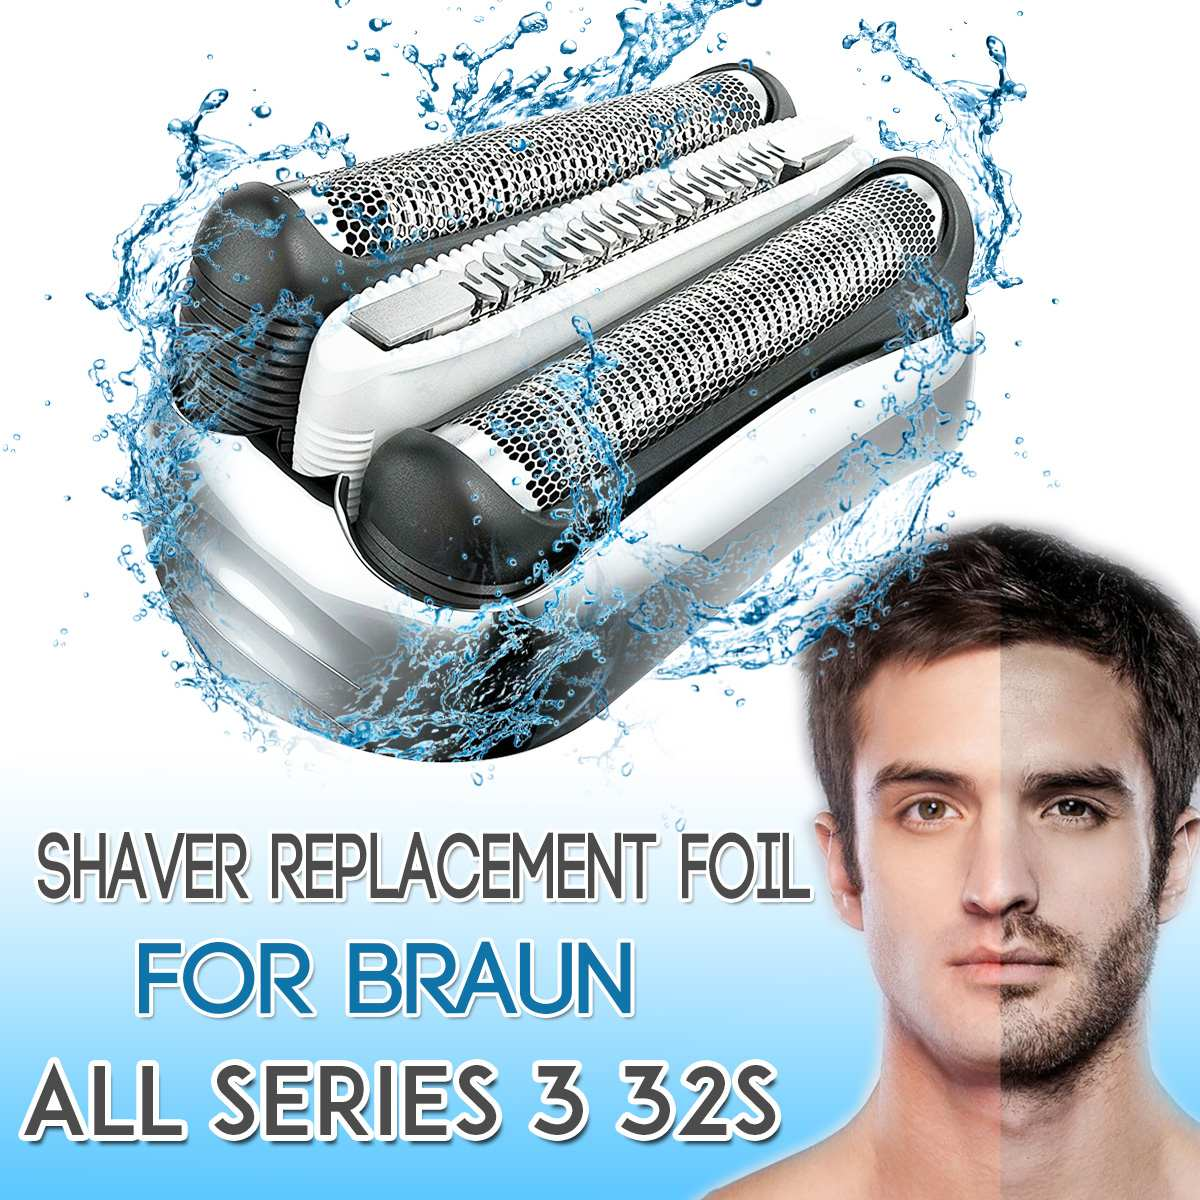 Shaver Foil Head Replacement For Braun 21B 32B 32S Series 3 5776 5415 5772 3040cc 3050cc 3080cc 300s 310s Shaver Razor Blade